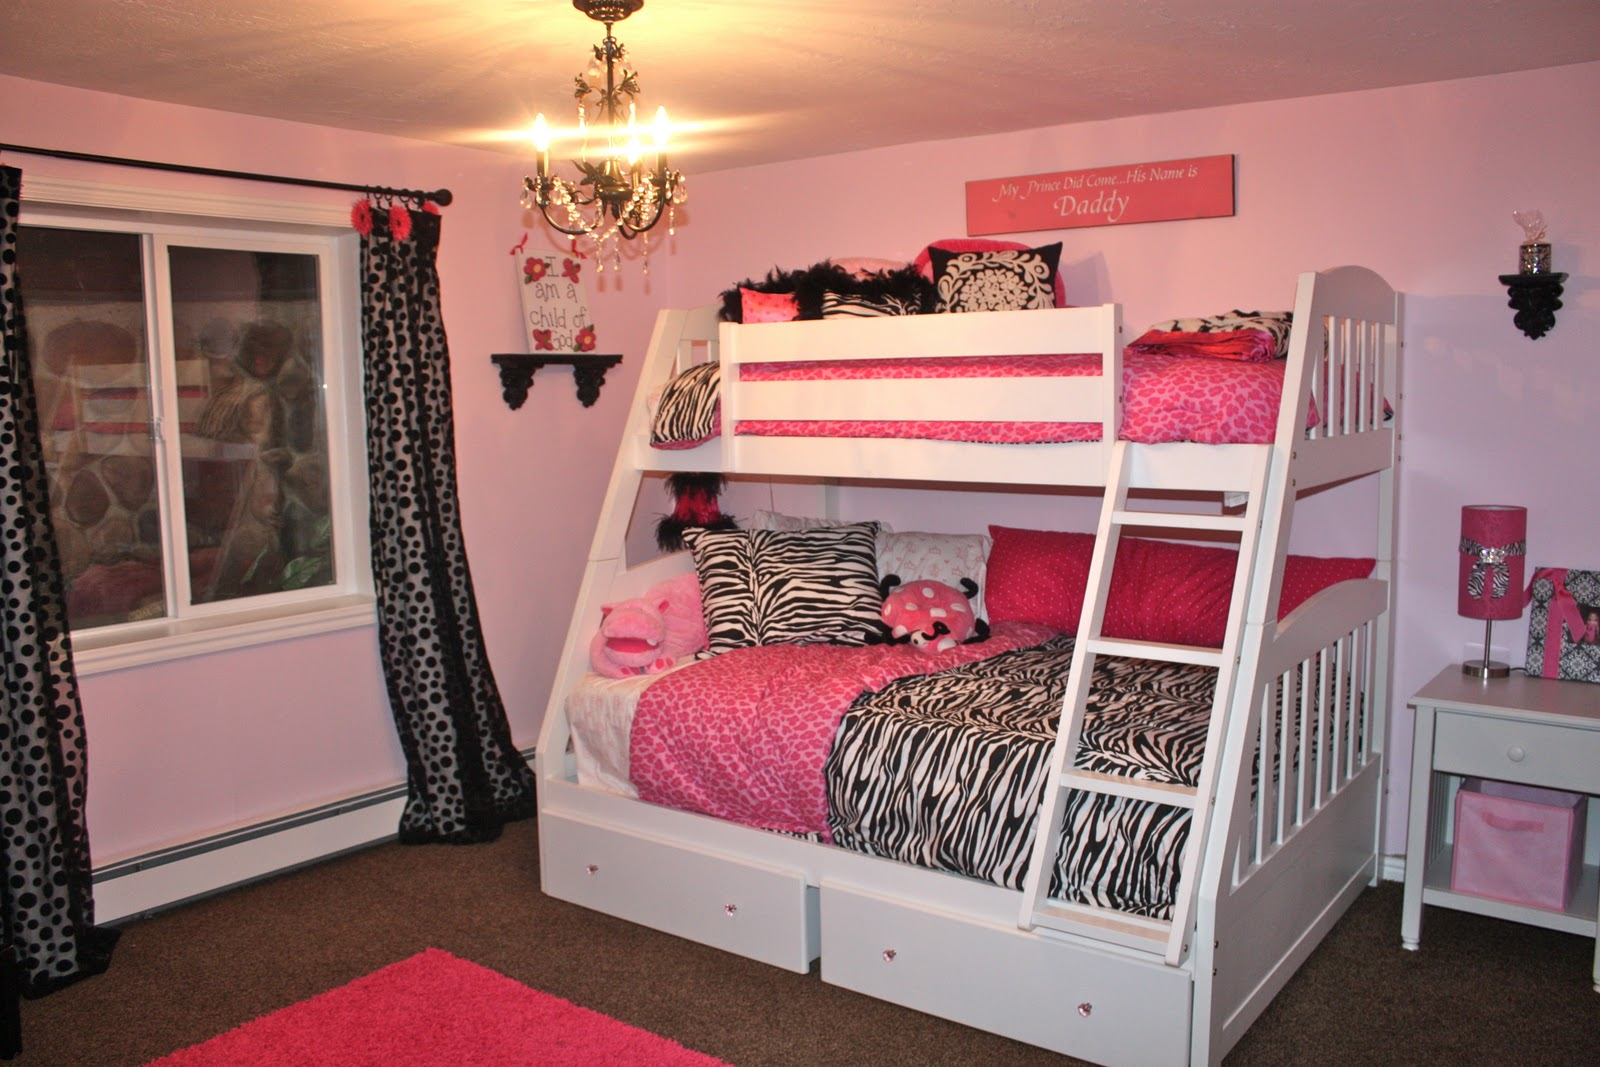 Black and pink bedroom ideas 13 hd wallpaper for Black pink and white bedroom ideas